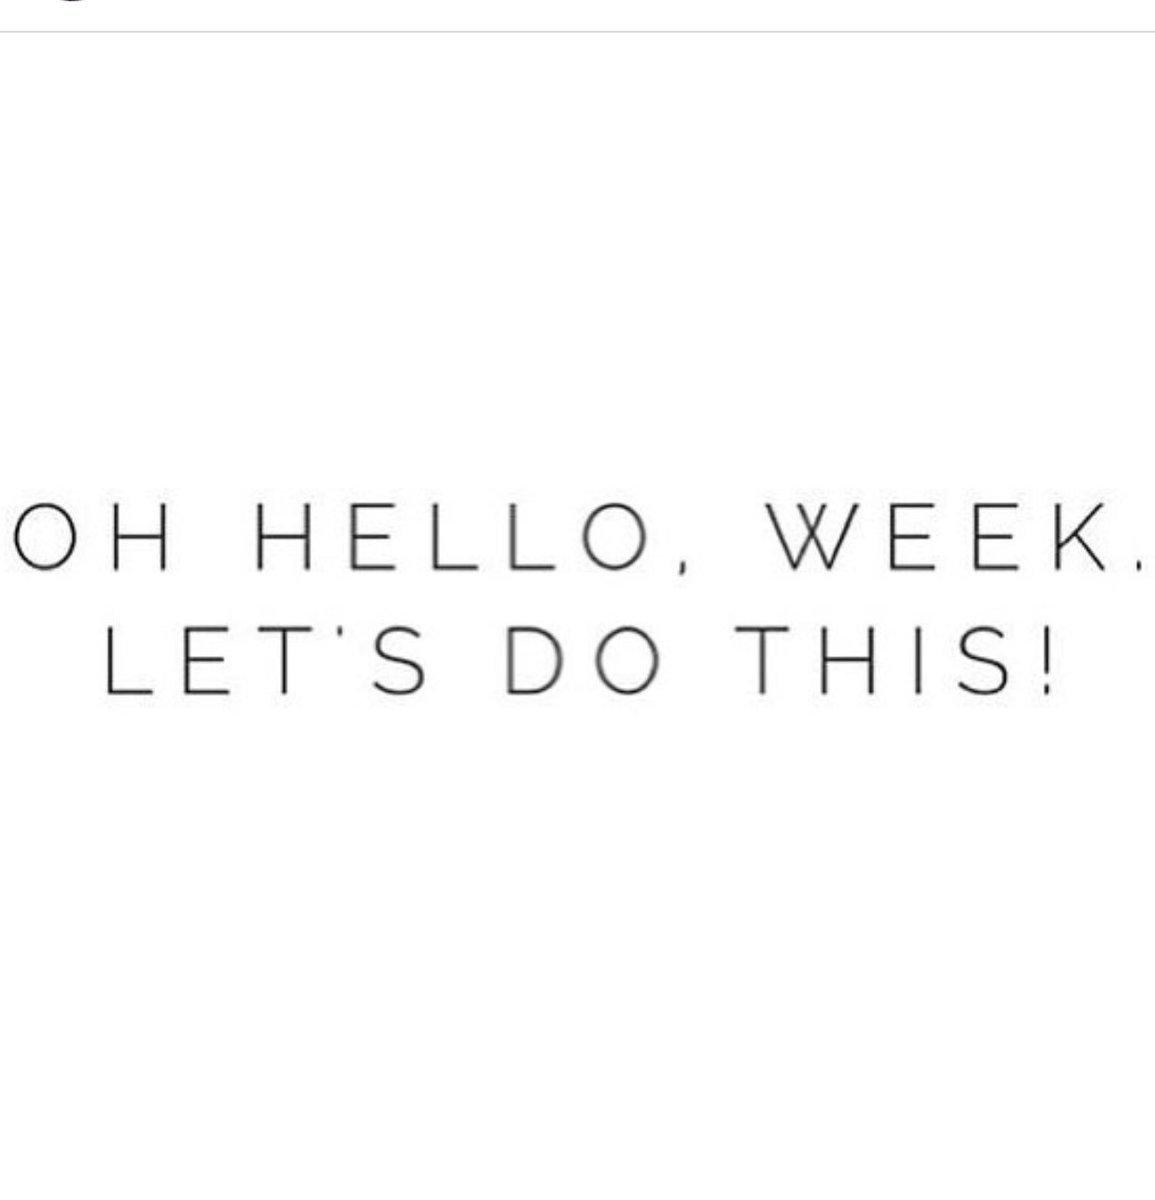 Good morning, busy week ahead !!! #MondayMorning #wegotthis #work 🙋🏼 h...